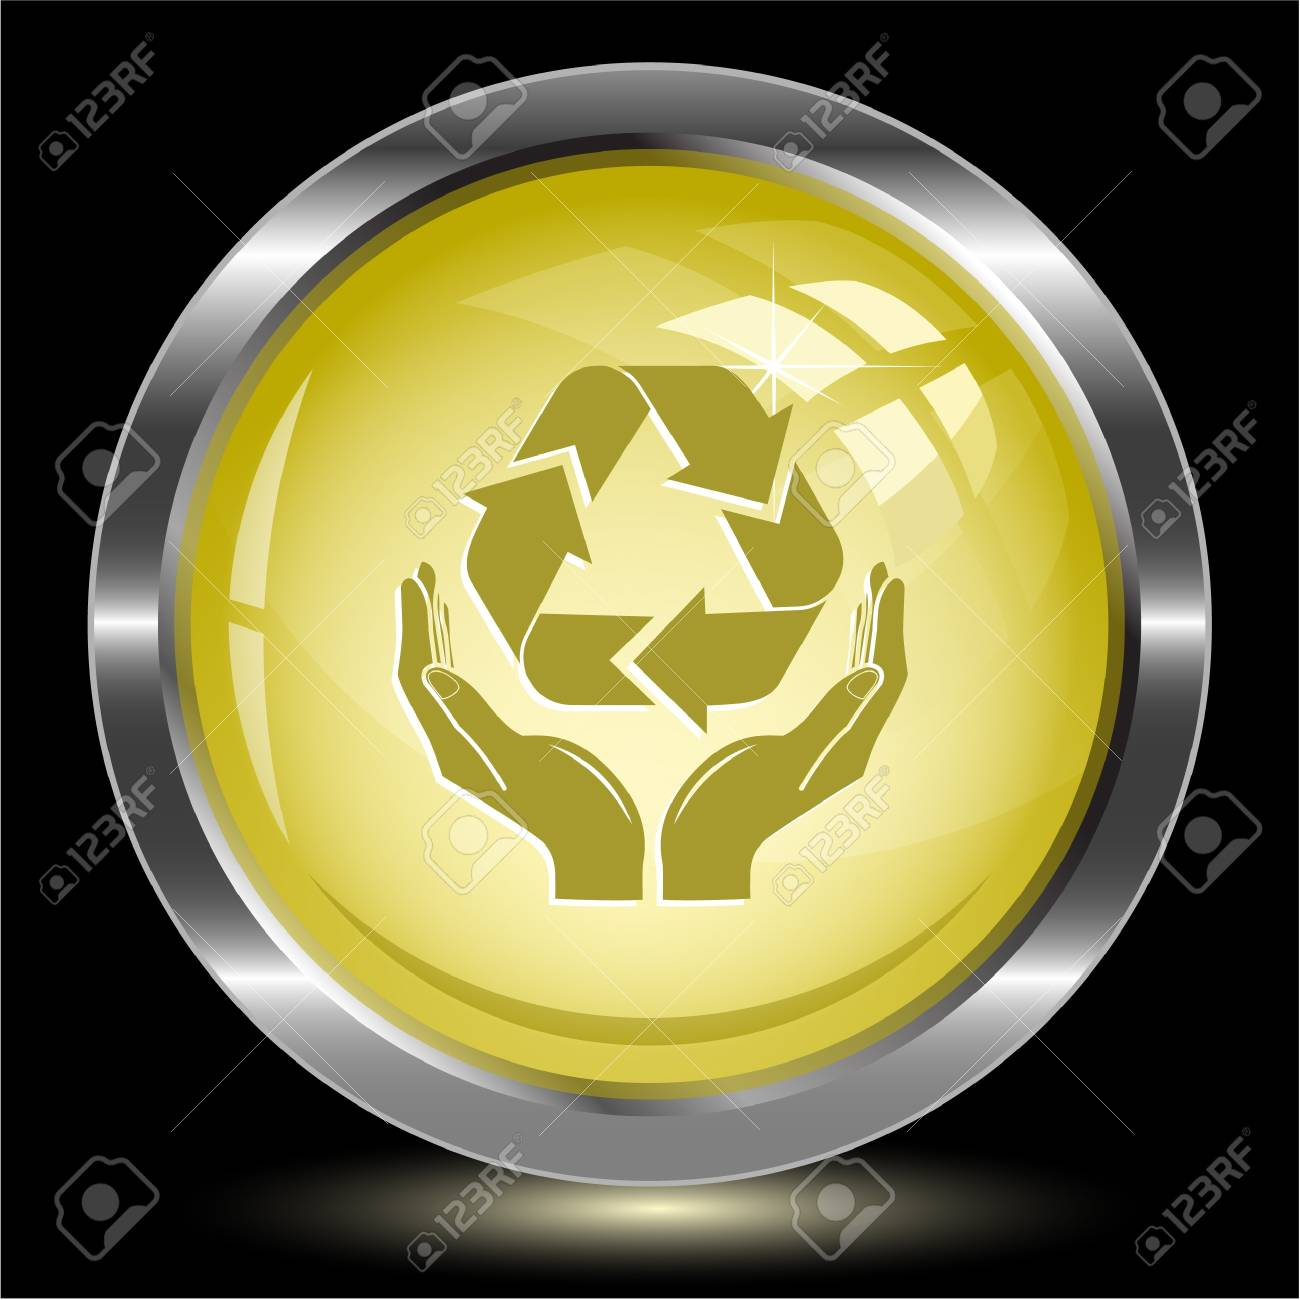 Protection nature. Internet button. Vector illustration. Stock Photo - 17344514